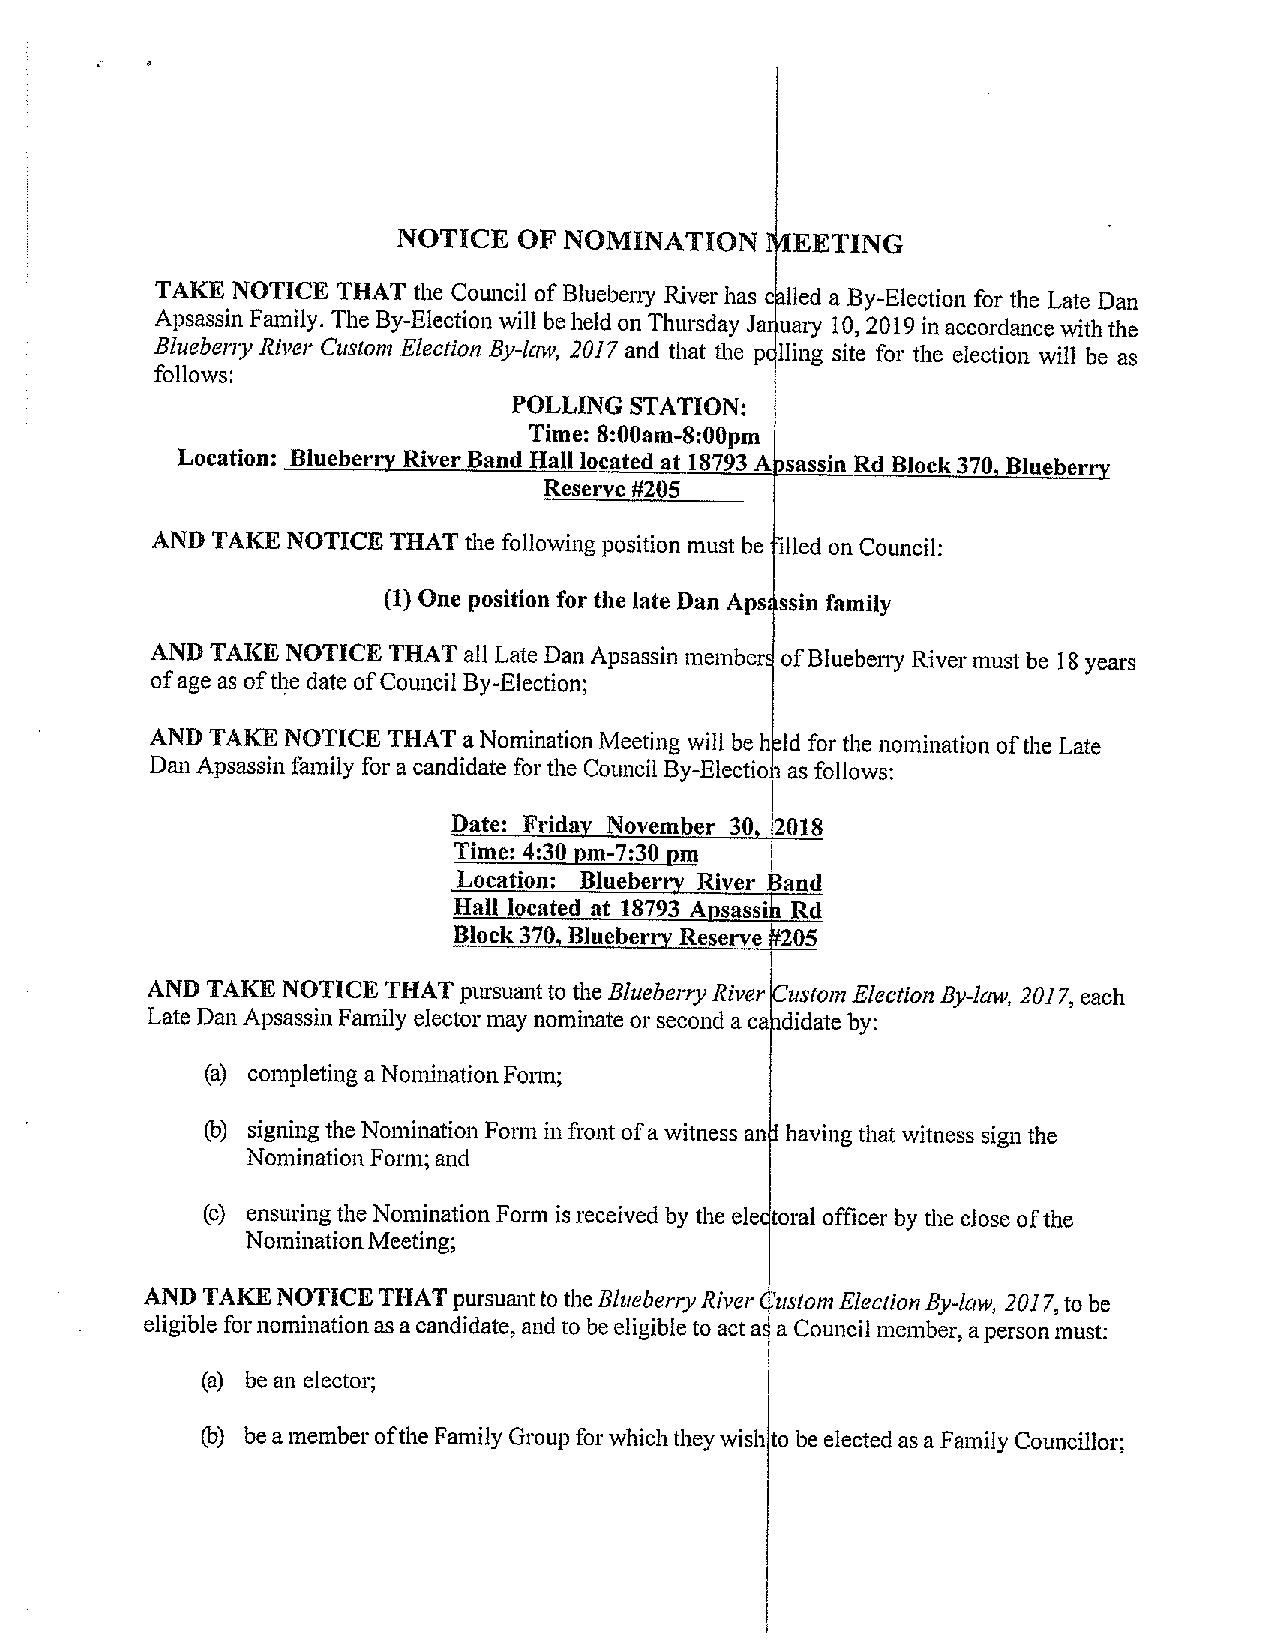 Nomination 1_11132018093707-page-001